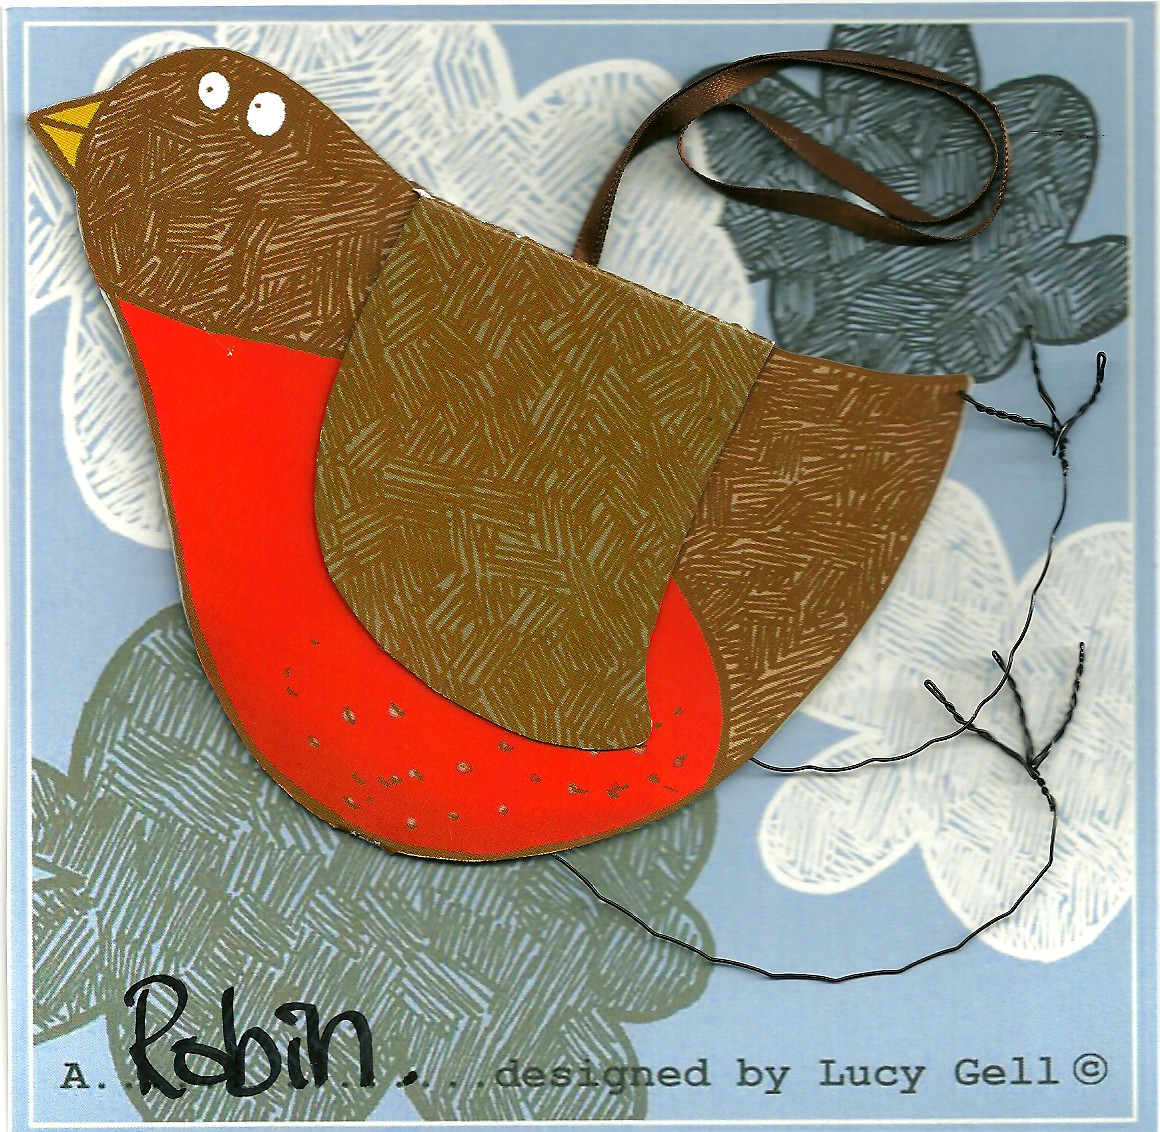 Pop-up 3D hanging Robin Red Breast card